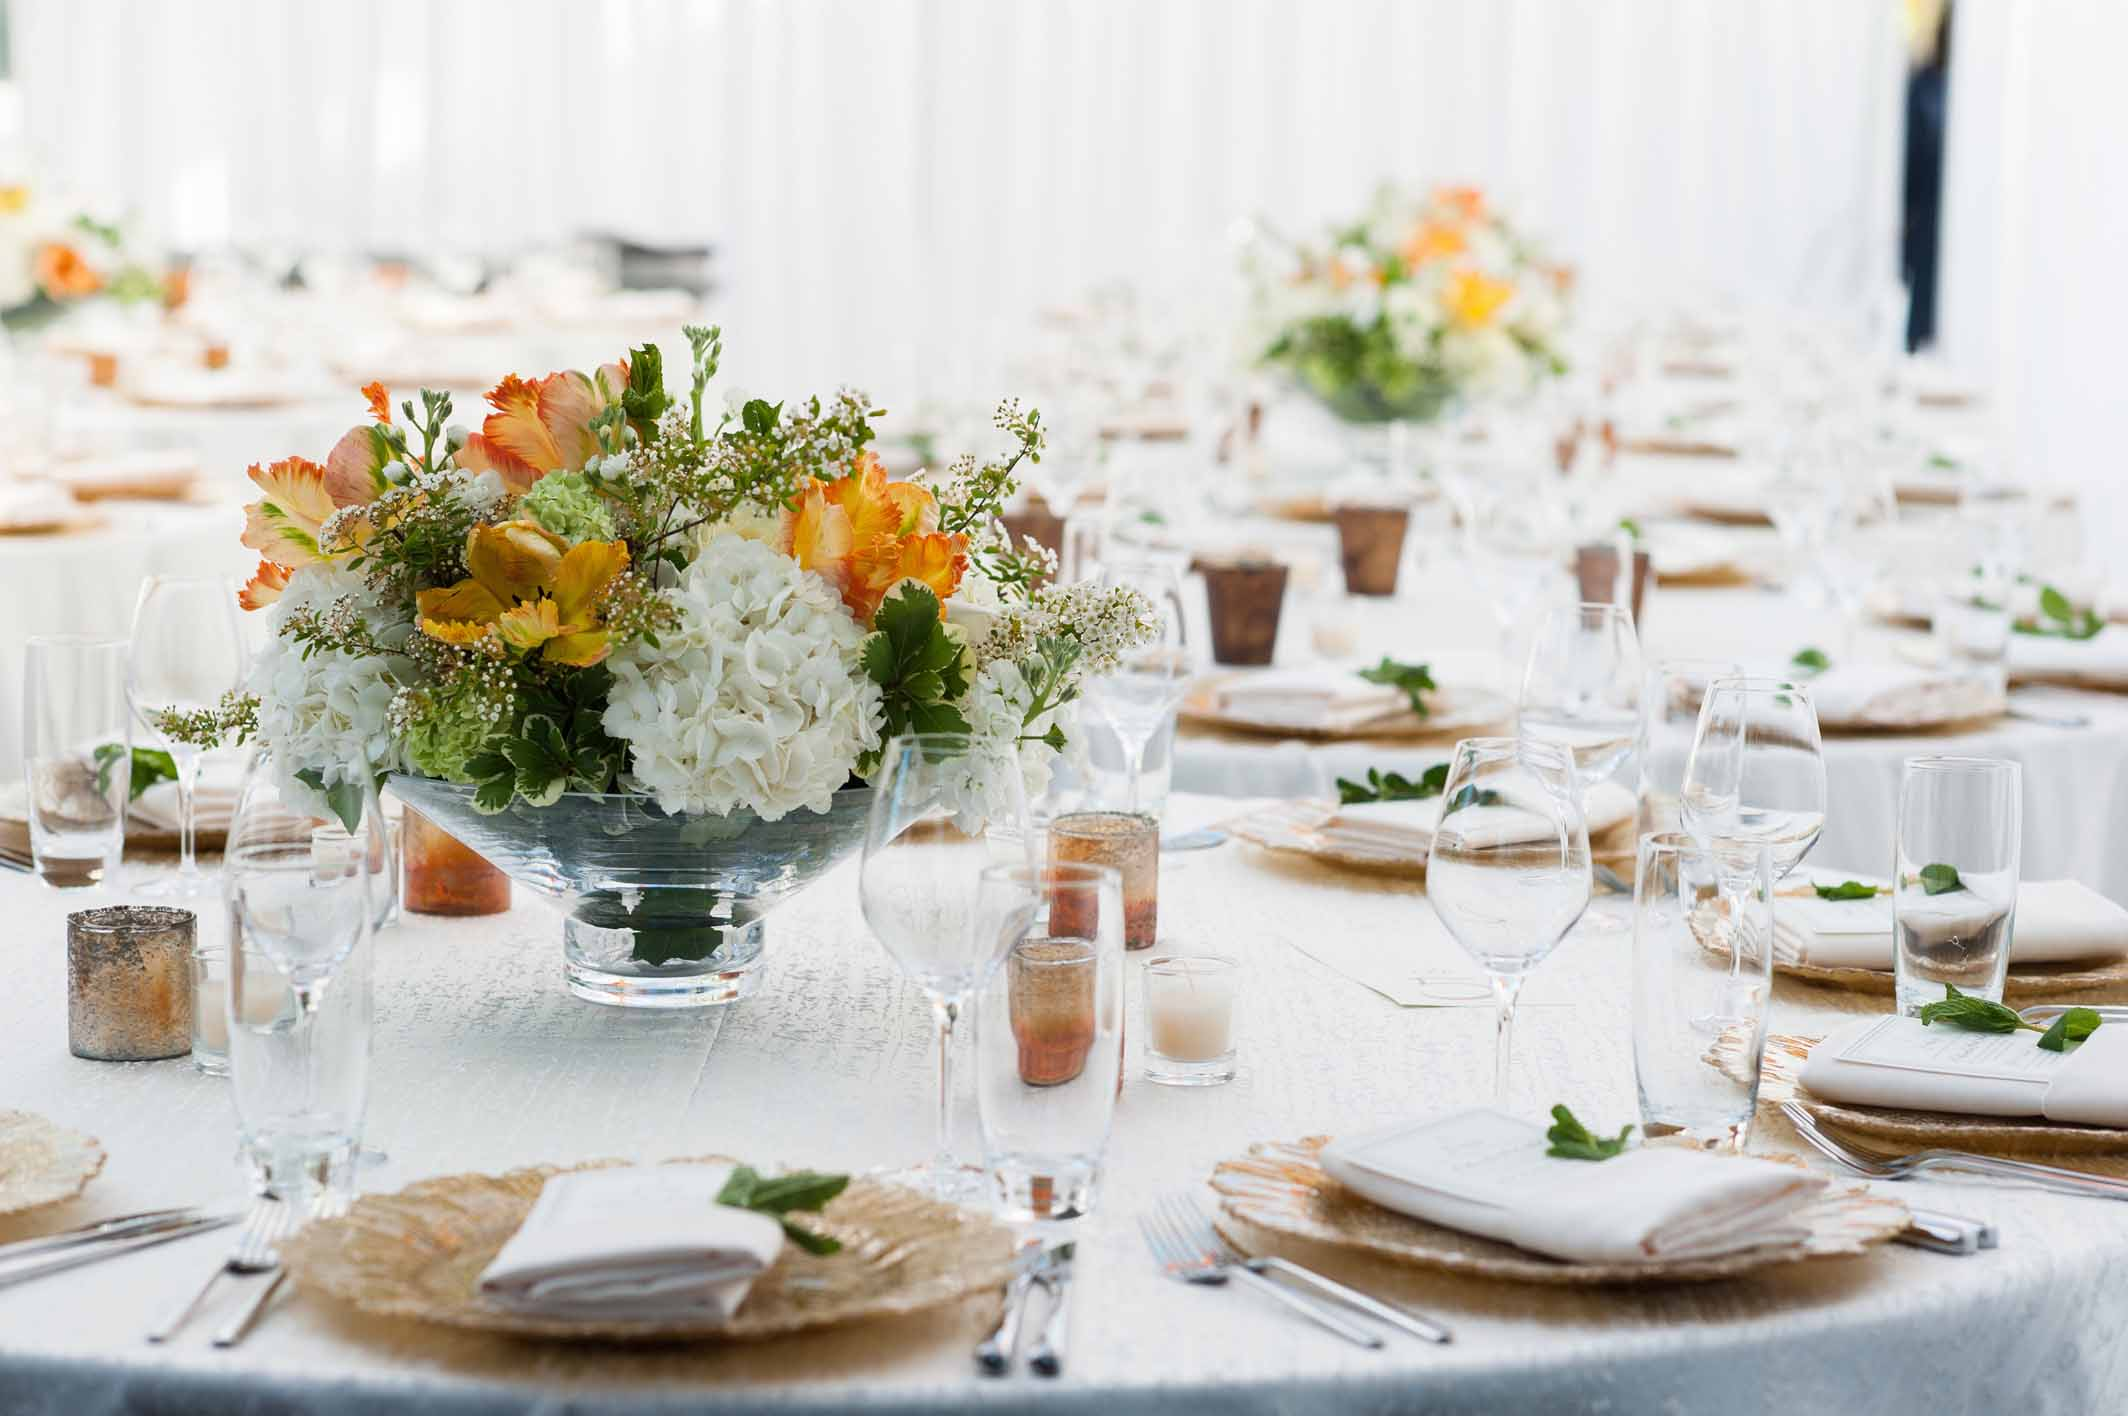 Wedding reception table with centerpieces of white and orange spring flowers on round table with gold charger plates, gold votive candles